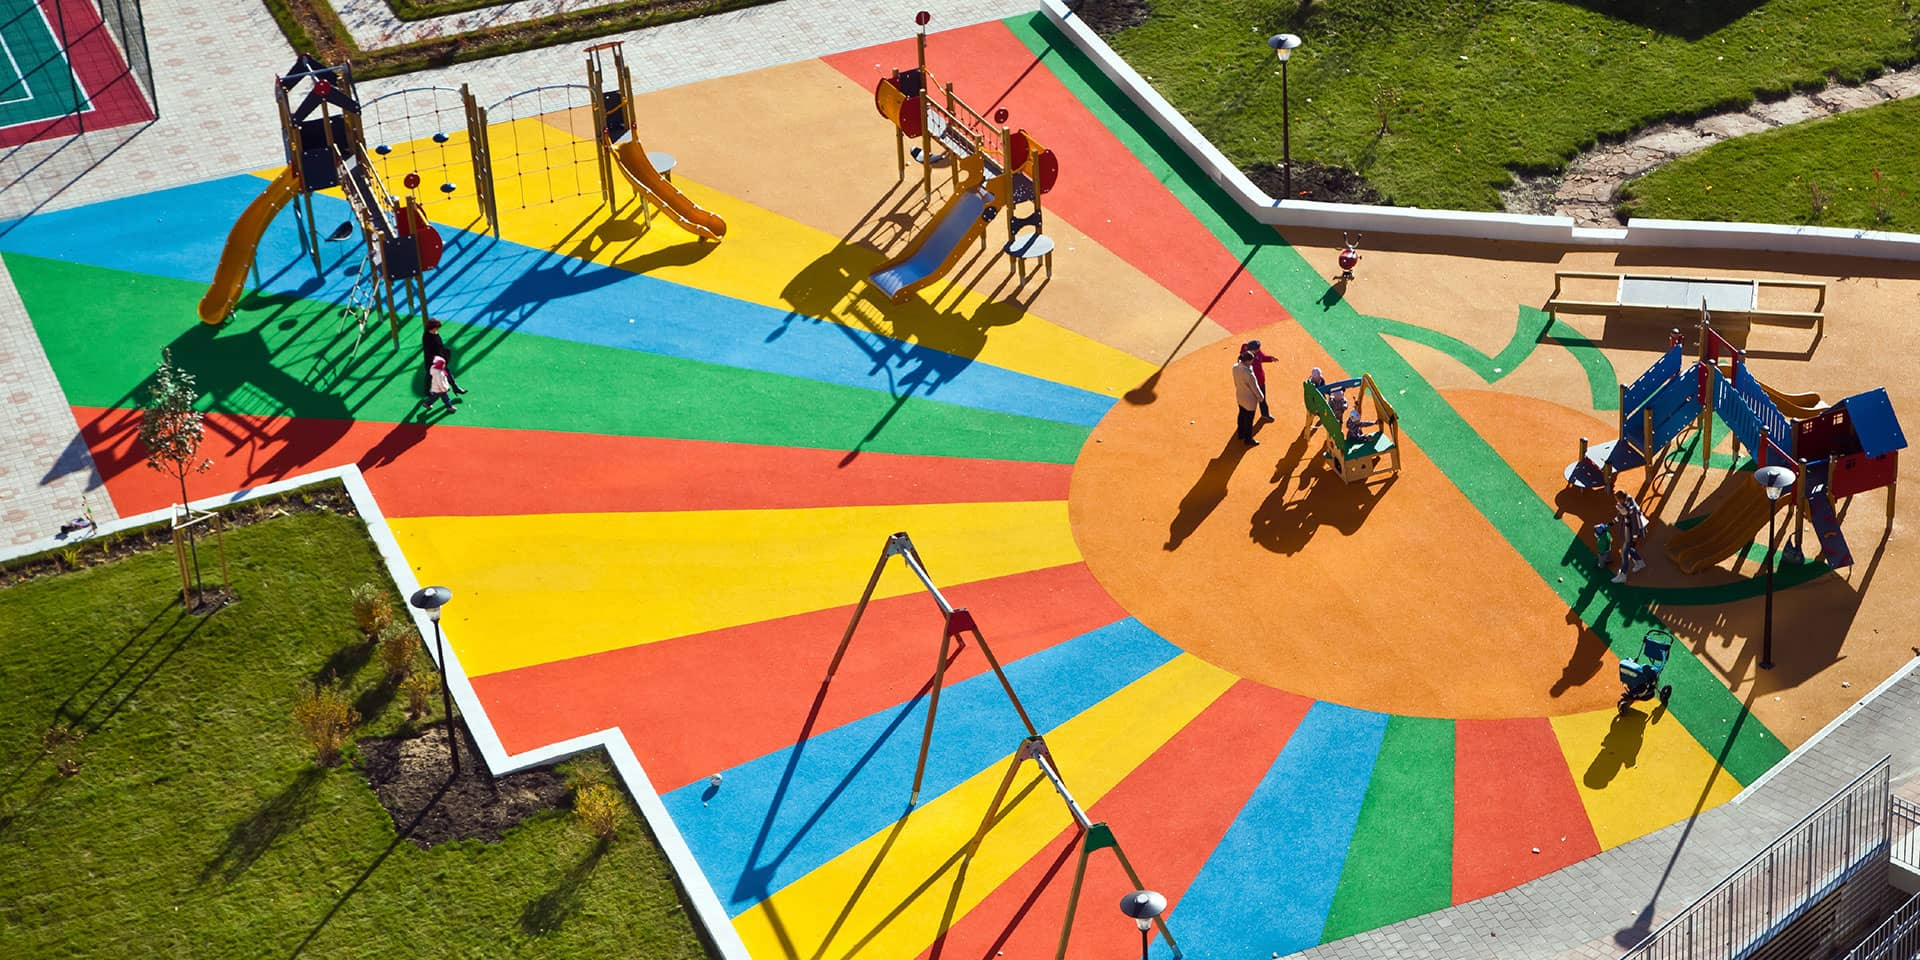 commercial playground surfacing min